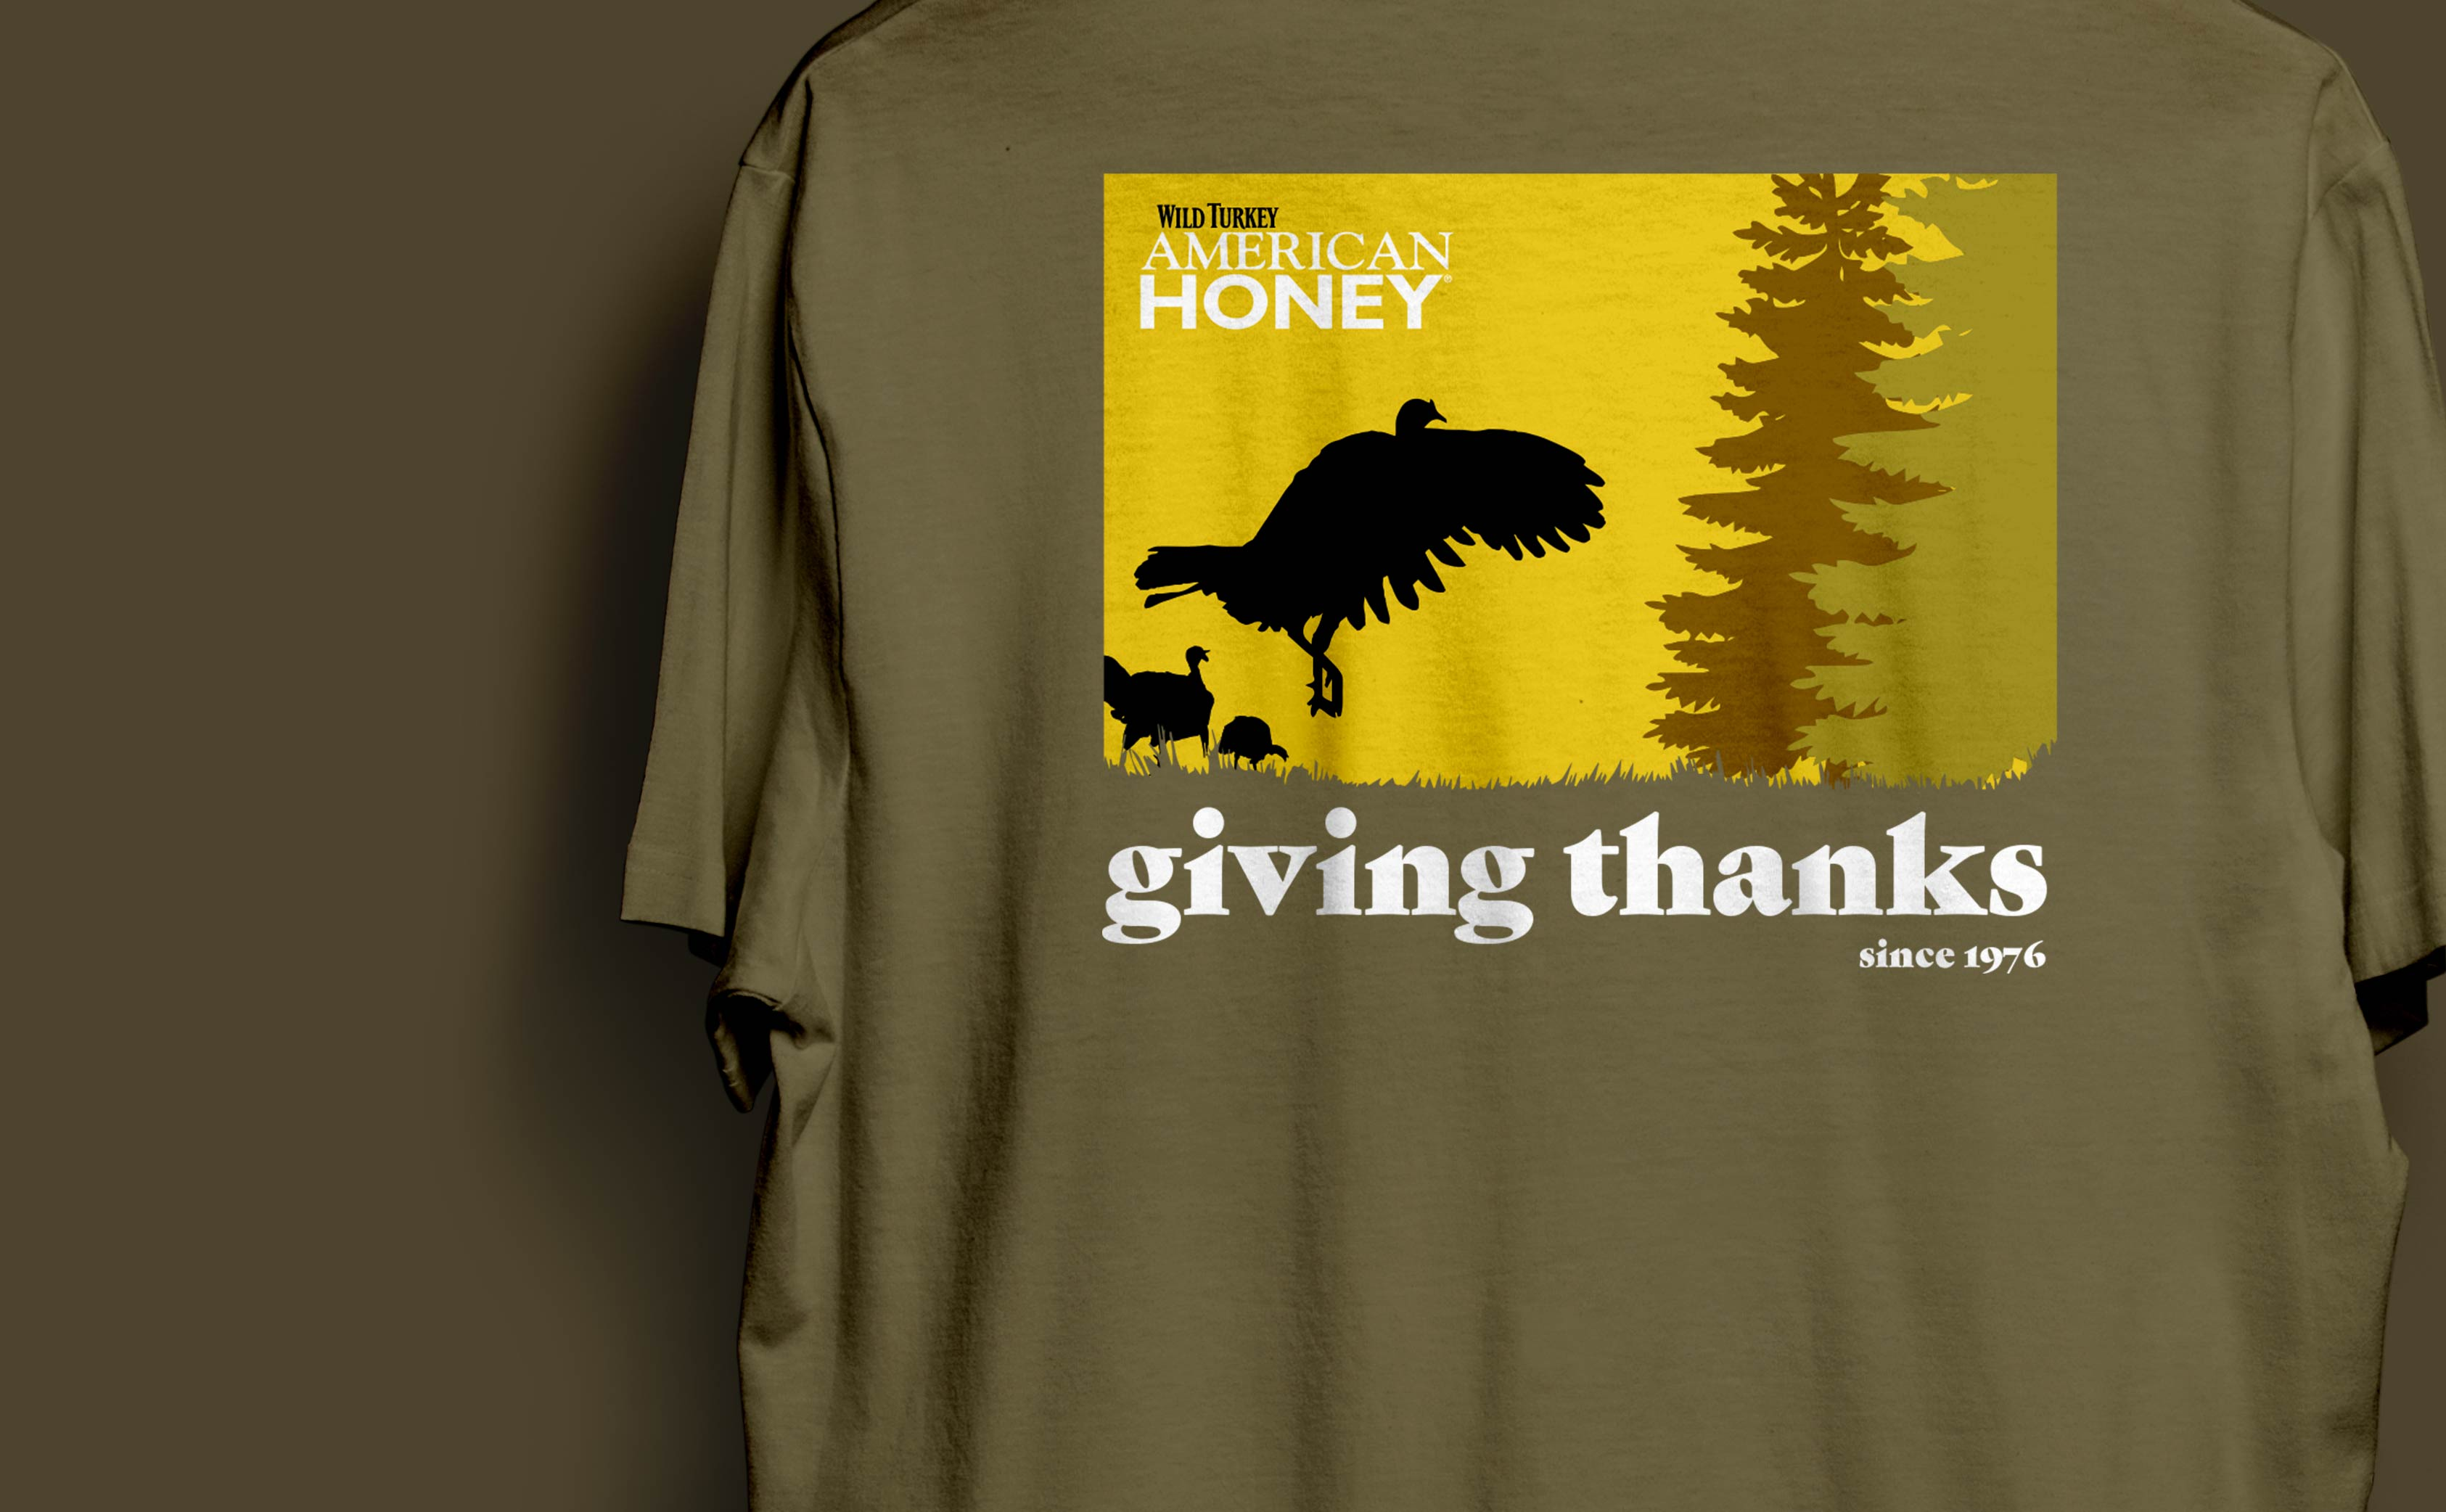 """Thanksgiving T-Shirt Design for Wild Turkey American Honey. A rustic design with vintage feel to reflect the brand's heritage and connection to the outdoors."""